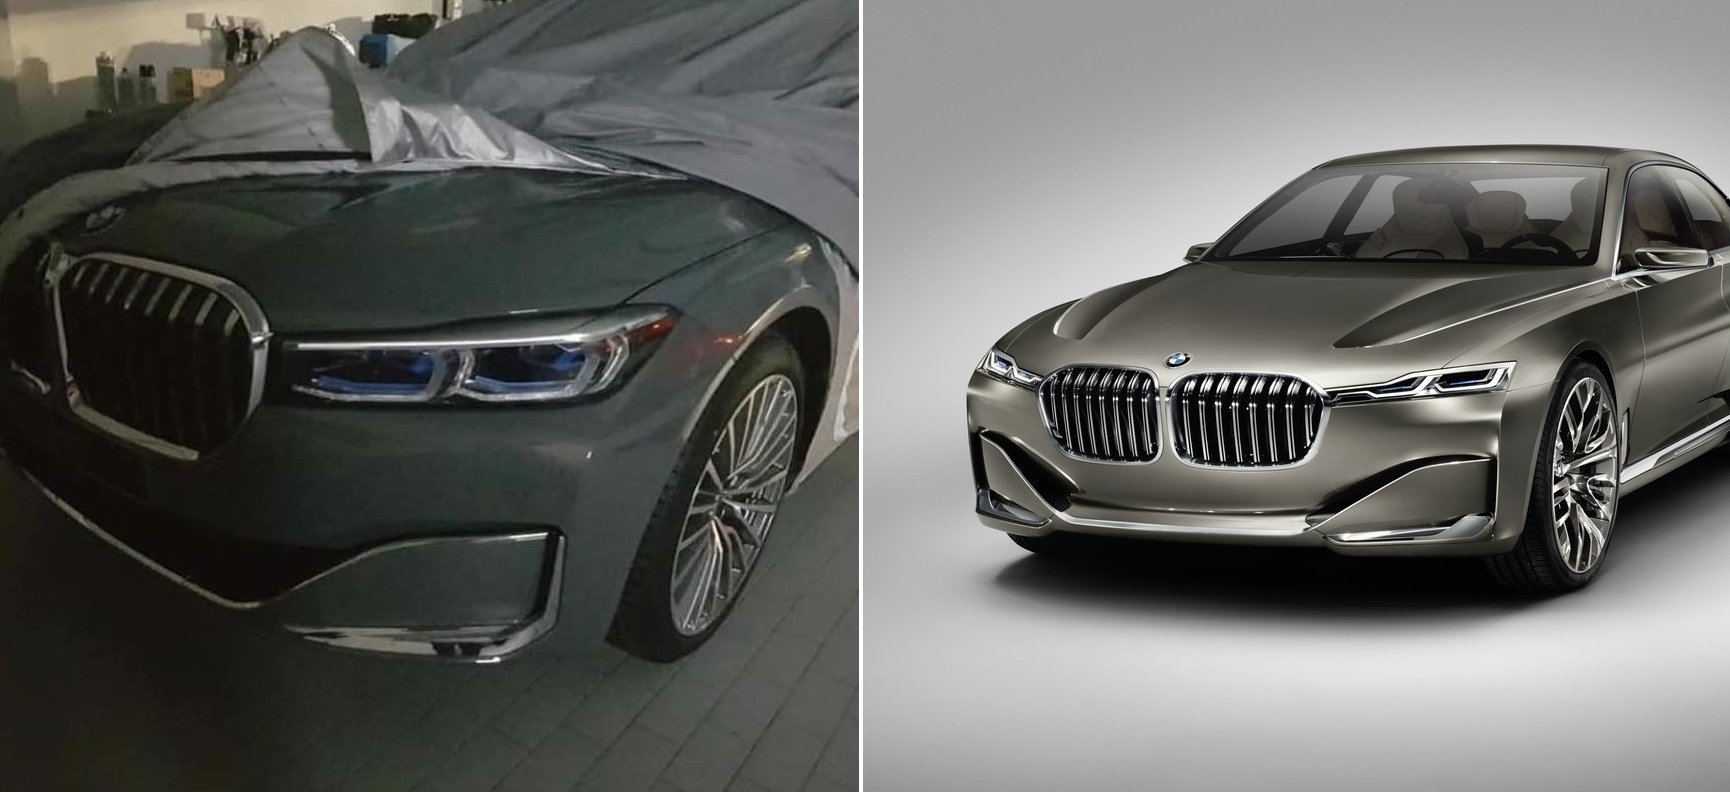 If This Leak Shows The 2019 Bmw 7 Series Facelift It Looks A Lot